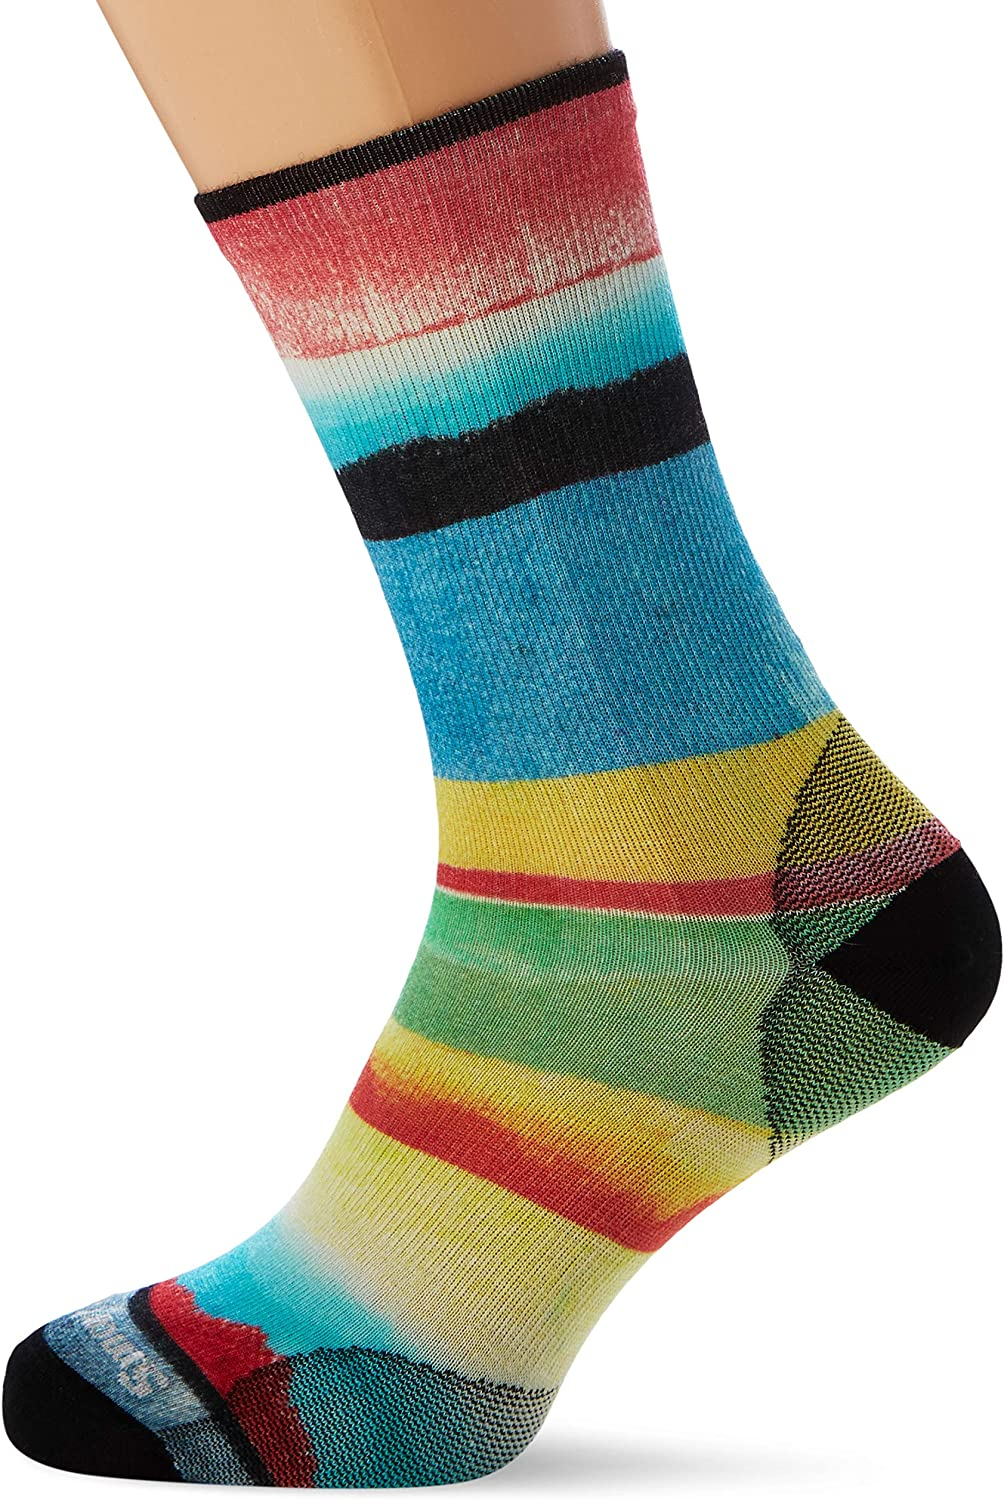 SmartWool Attention brand Men's Curated Crew Size Popular brand Large Socks